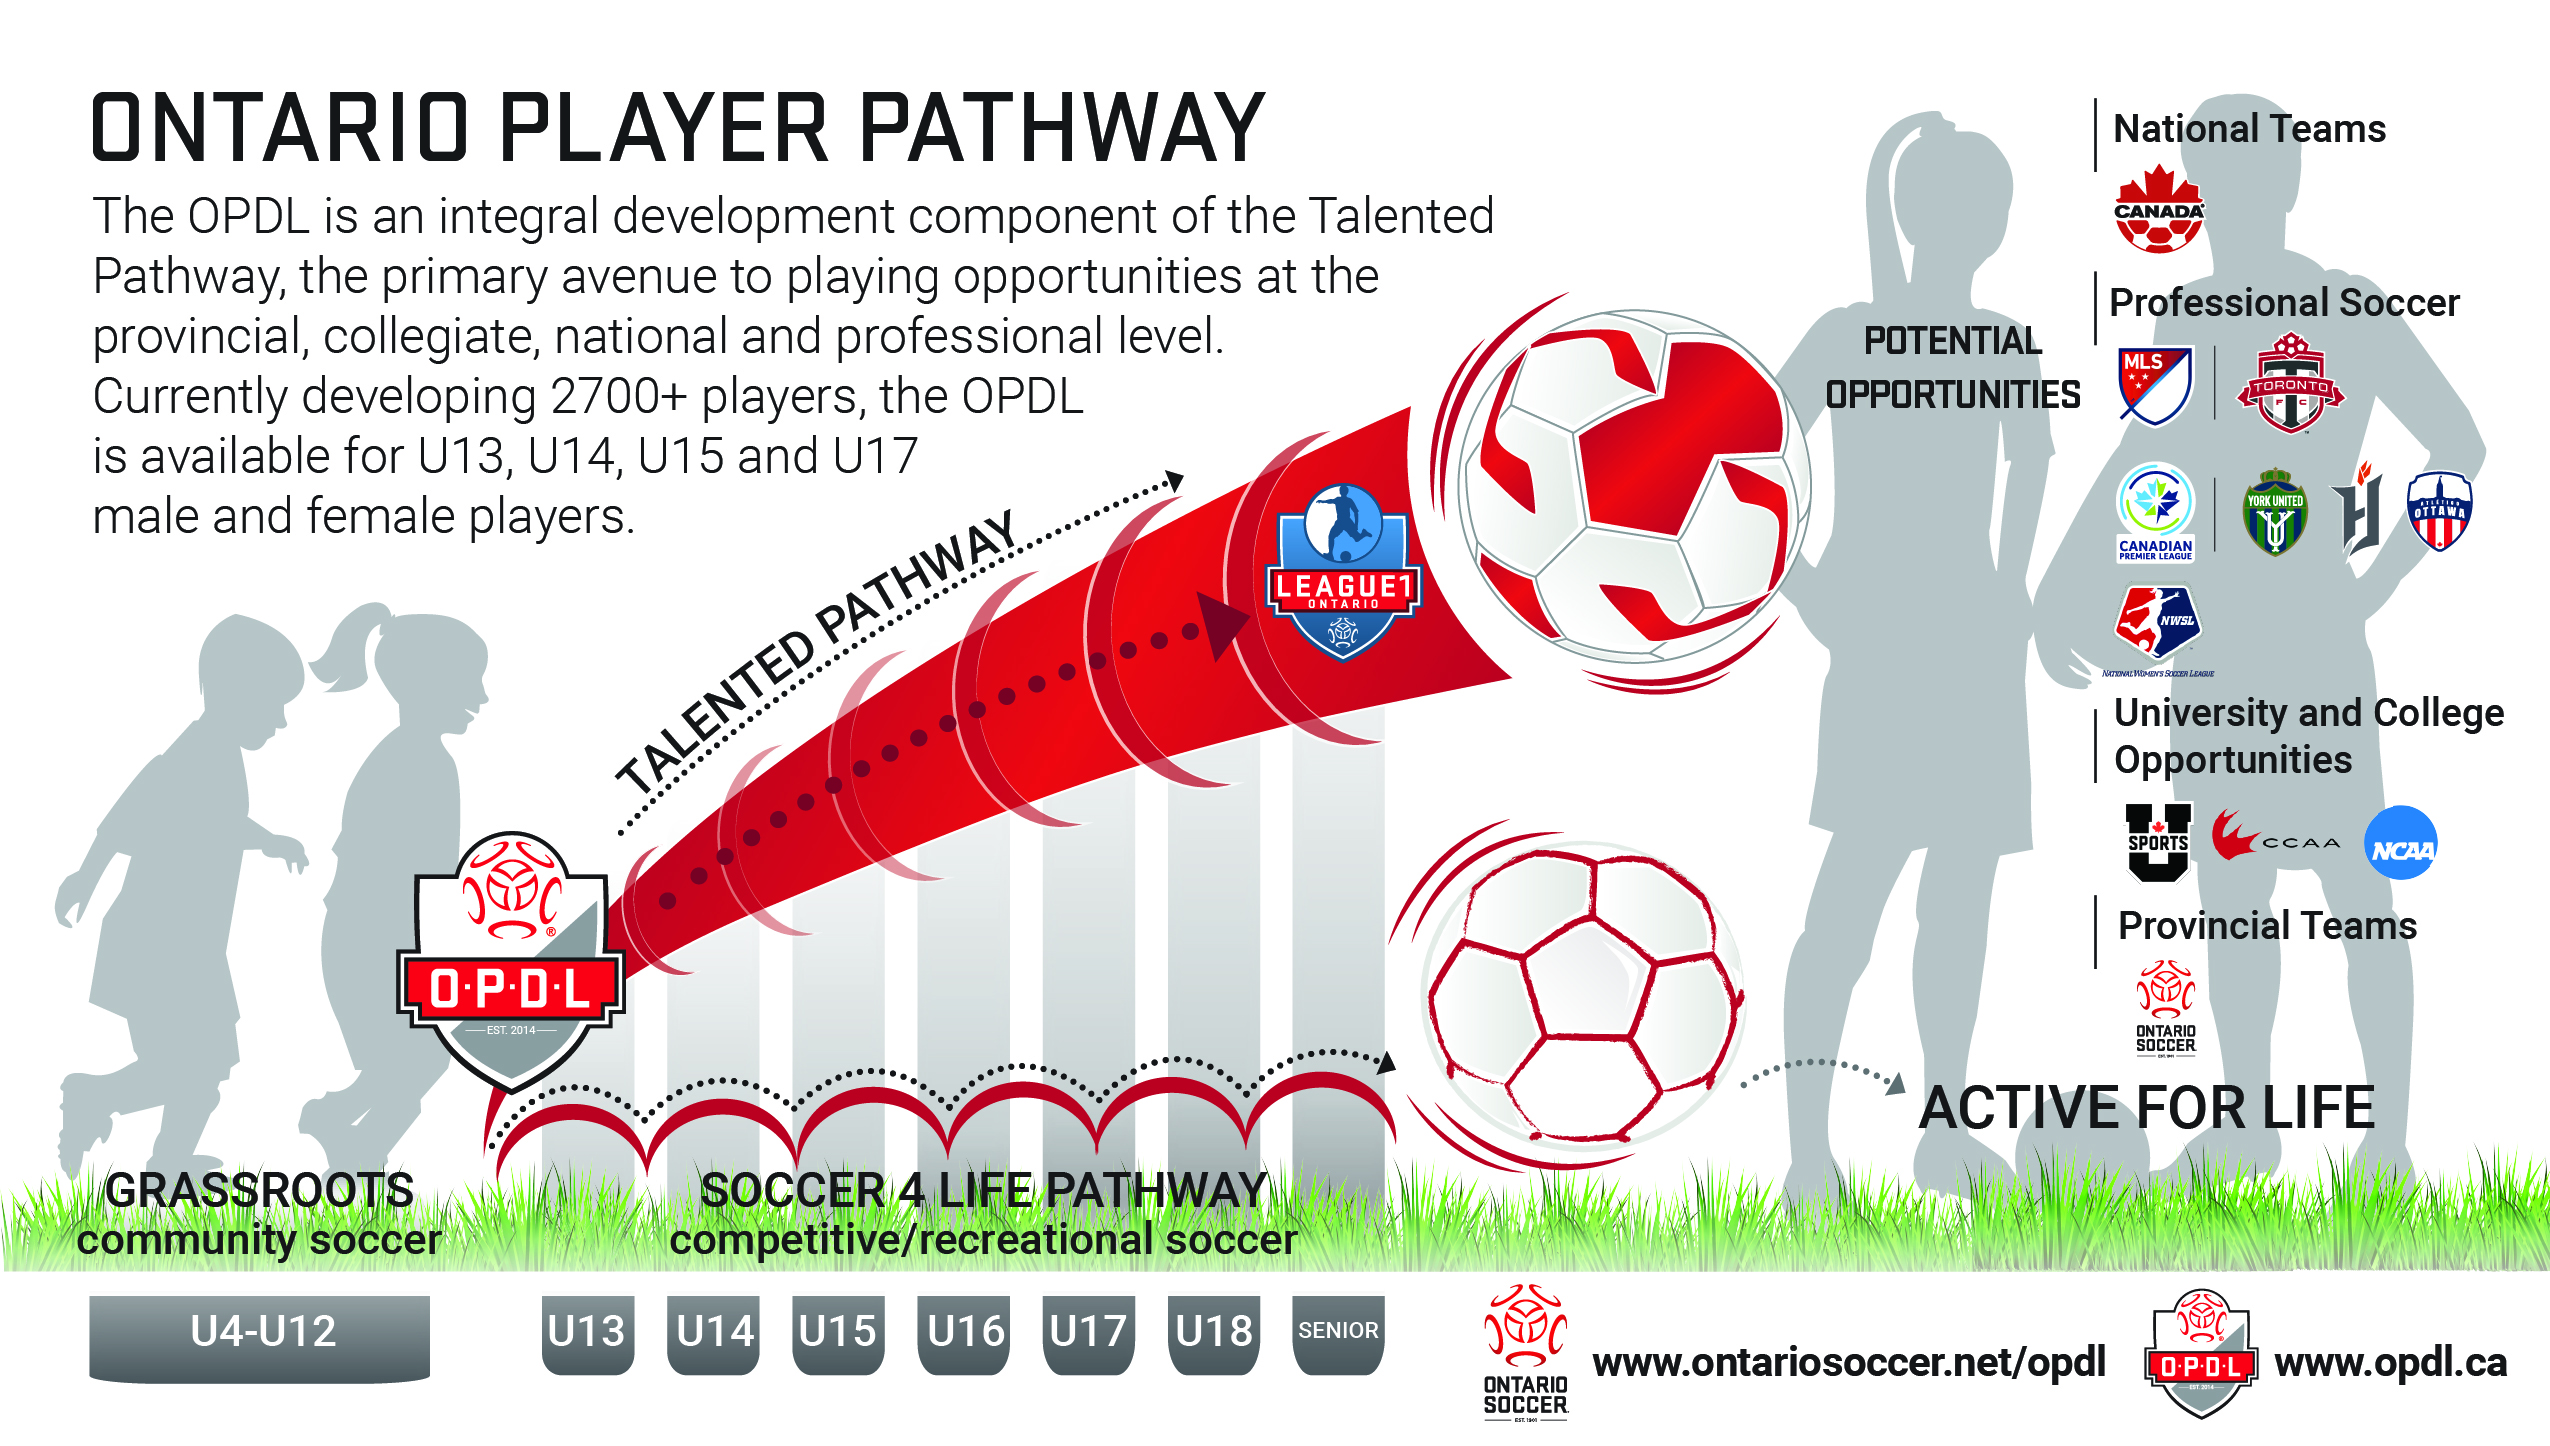 OPDL_PATHWAY_FINAL_JAN2021_300ppi